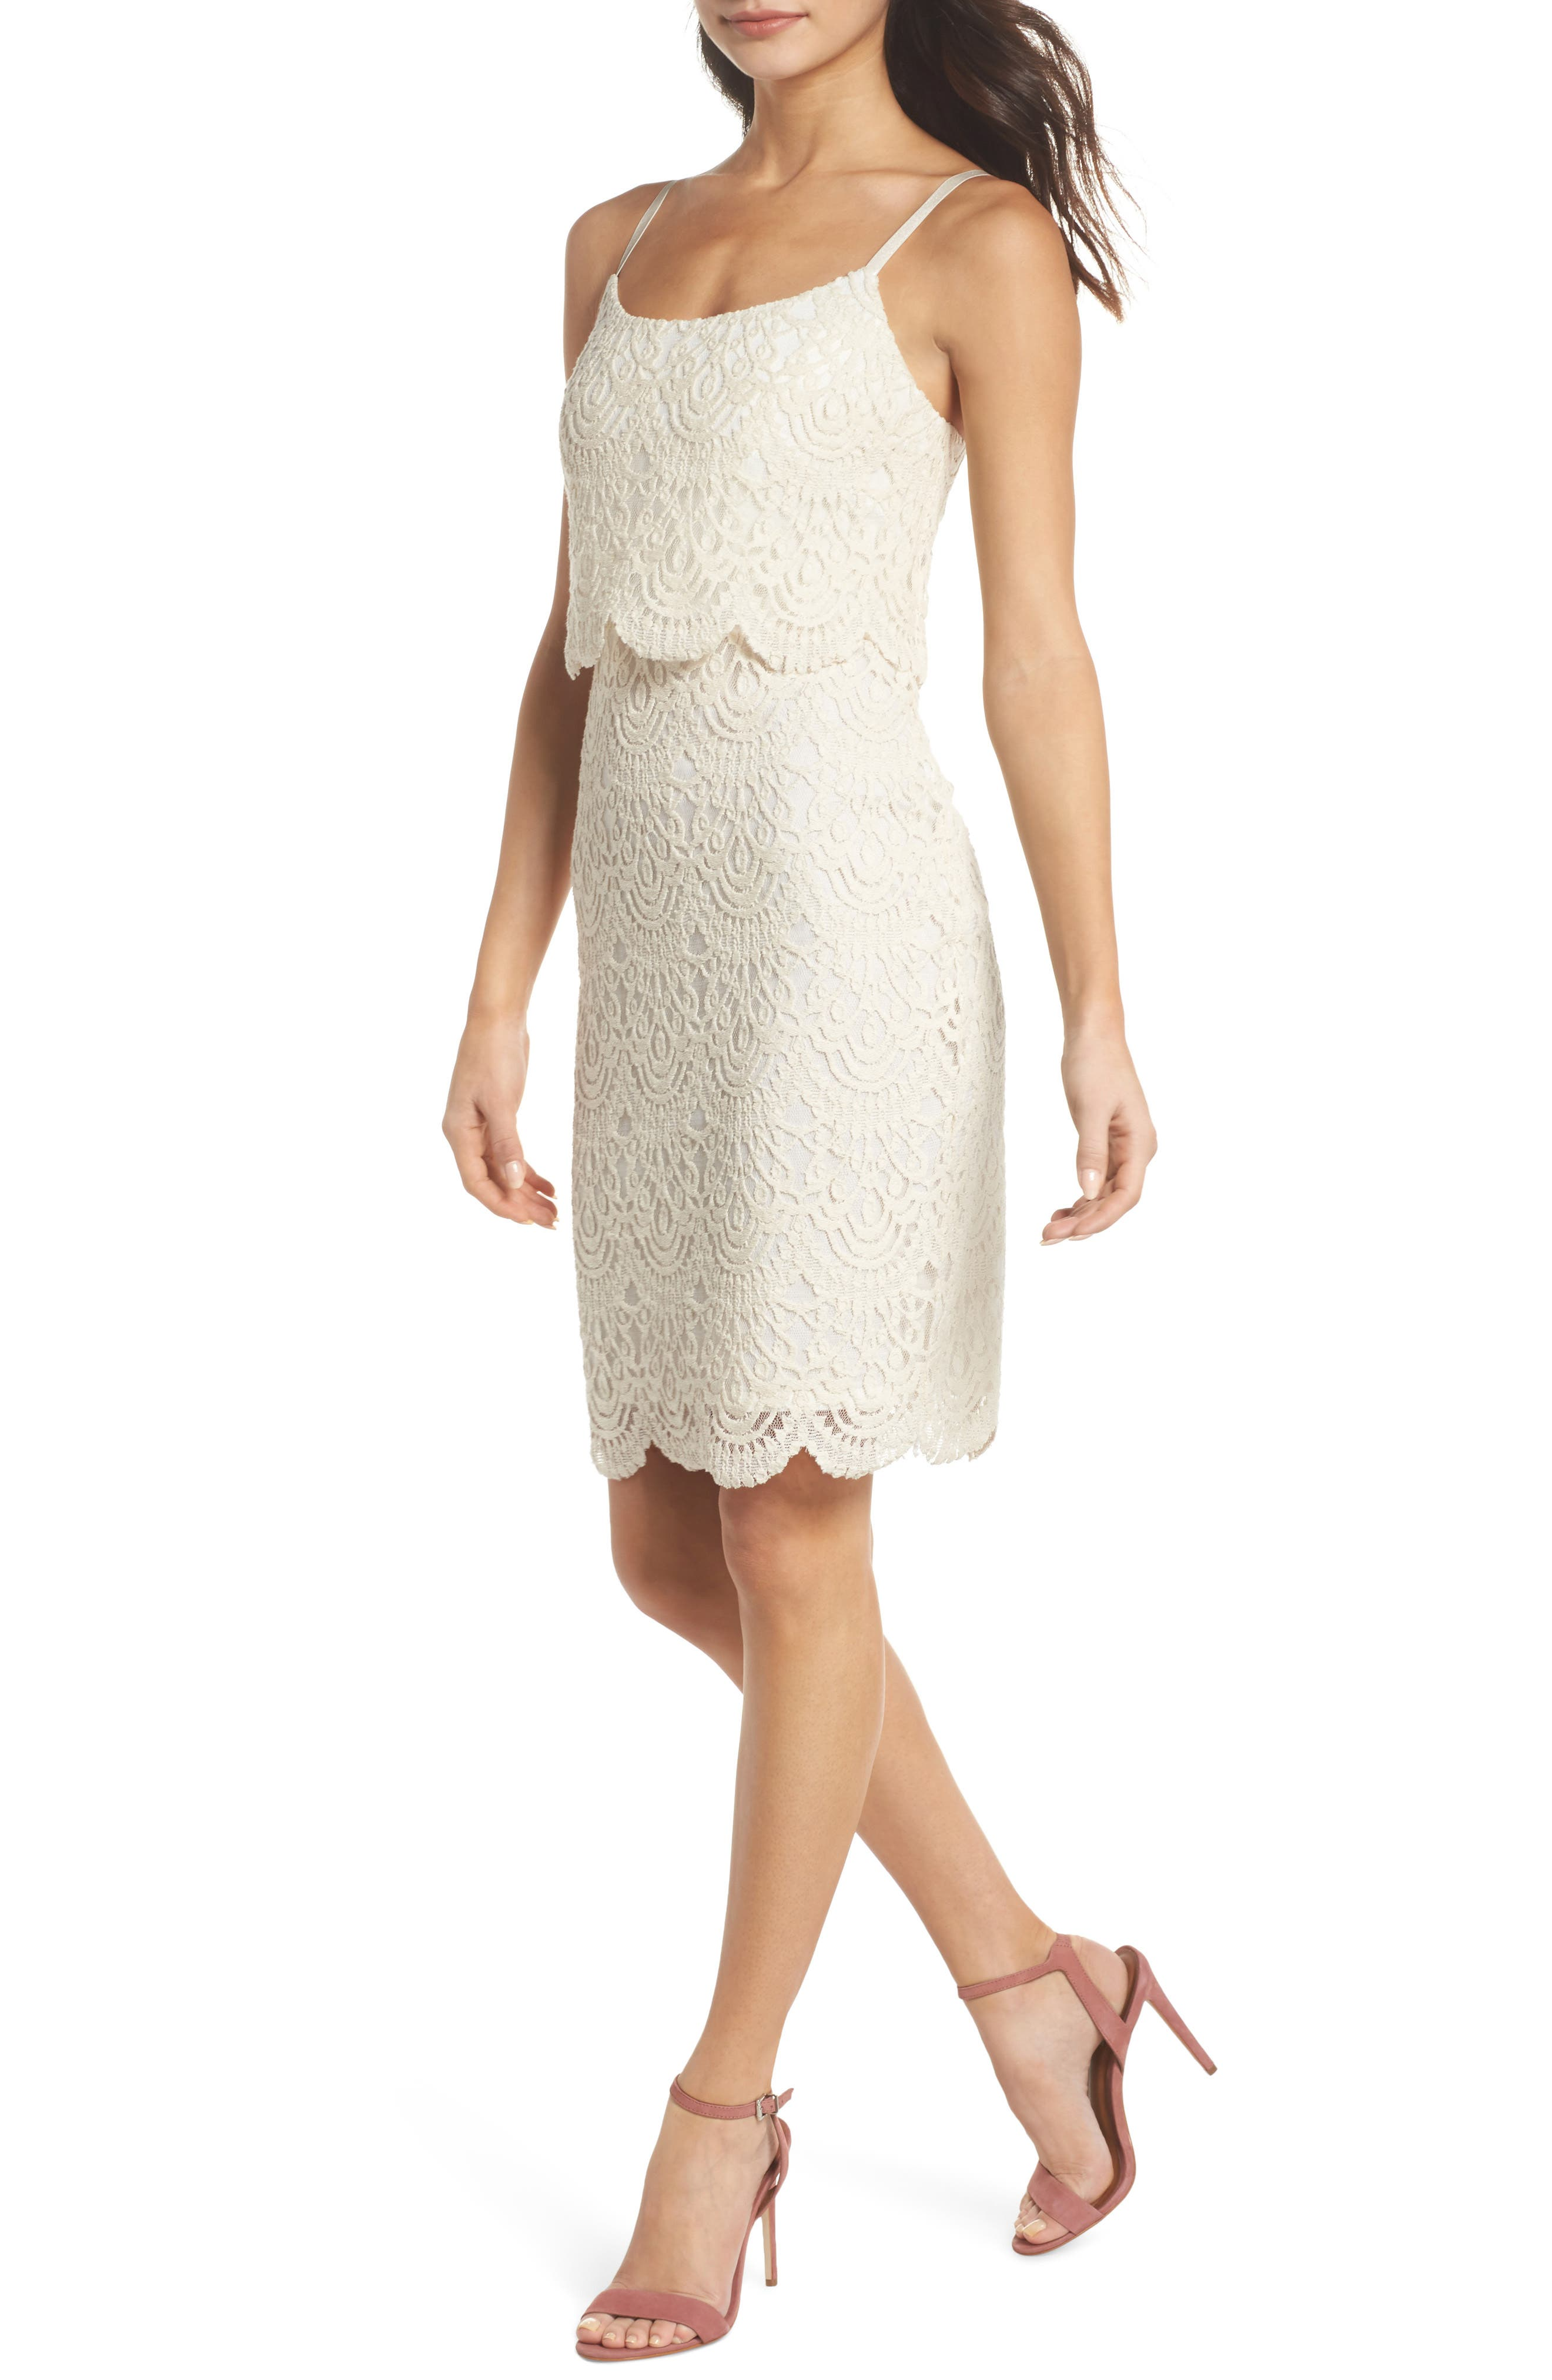 Barnsdall Afternoon Tiered Lace Dress,                             Main thumbnail 1, color,                             900